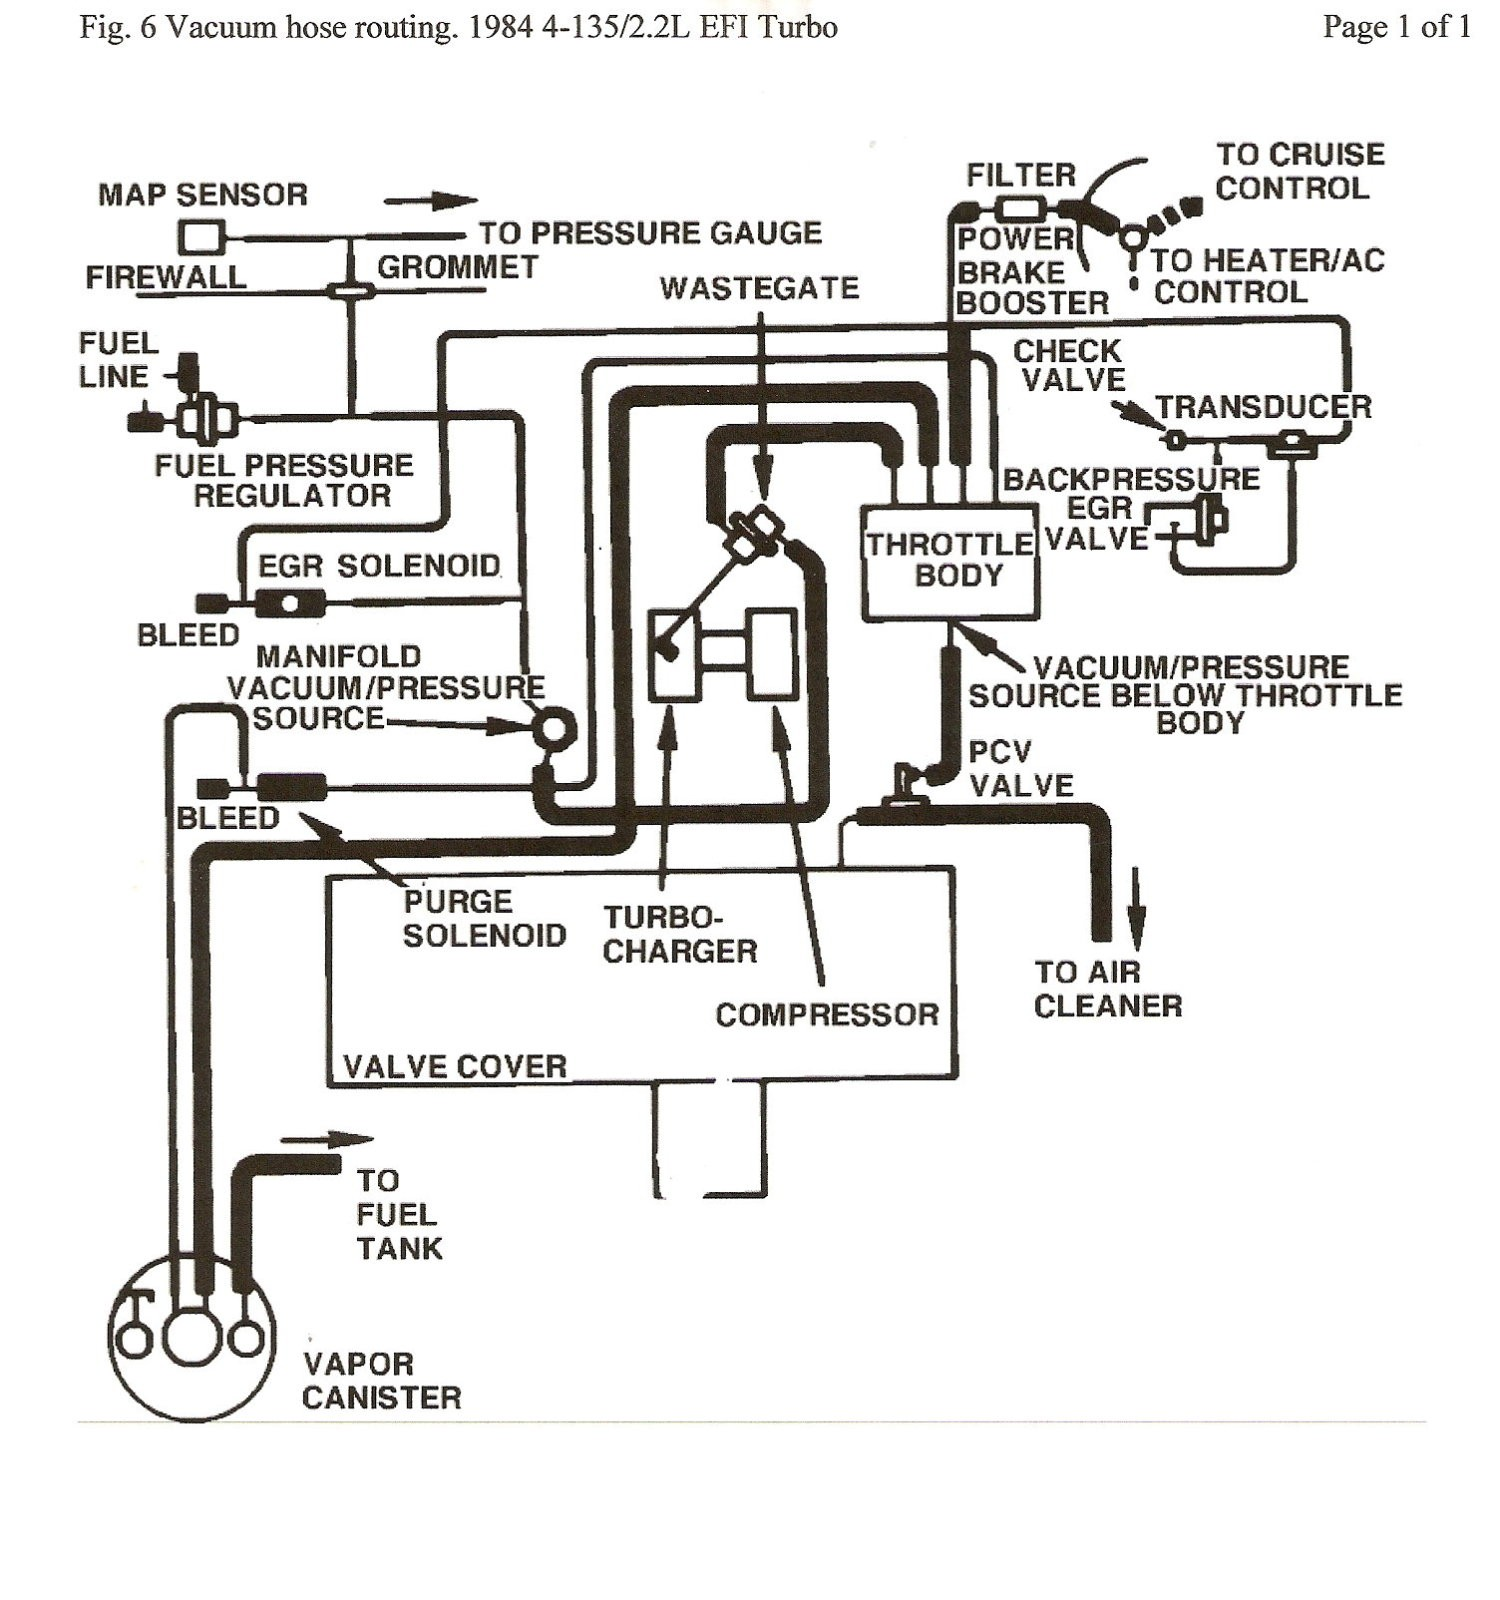 Twin Turbocharger Diagram Amazing Turbocharger Wastegate Diagram Ideas Electrical Diagram Of Twin Turbocharger Diagram